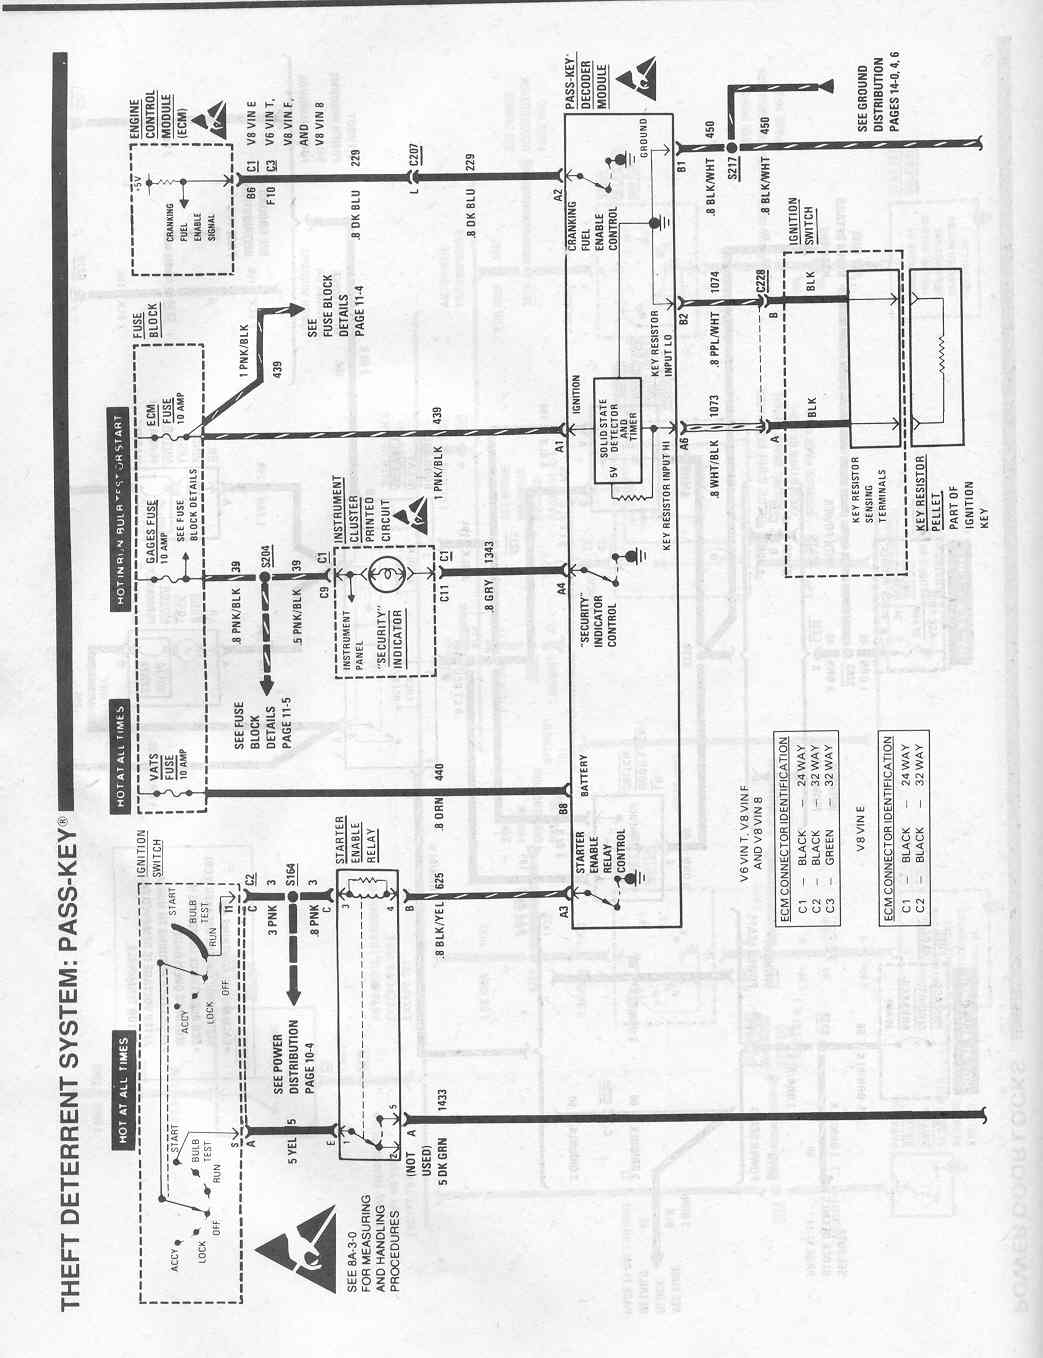 hight resolution of help need vats diagram 1992 camaro tbi third generation 1996 camaro traction control wiring diagram 78 camaro wiring diagram